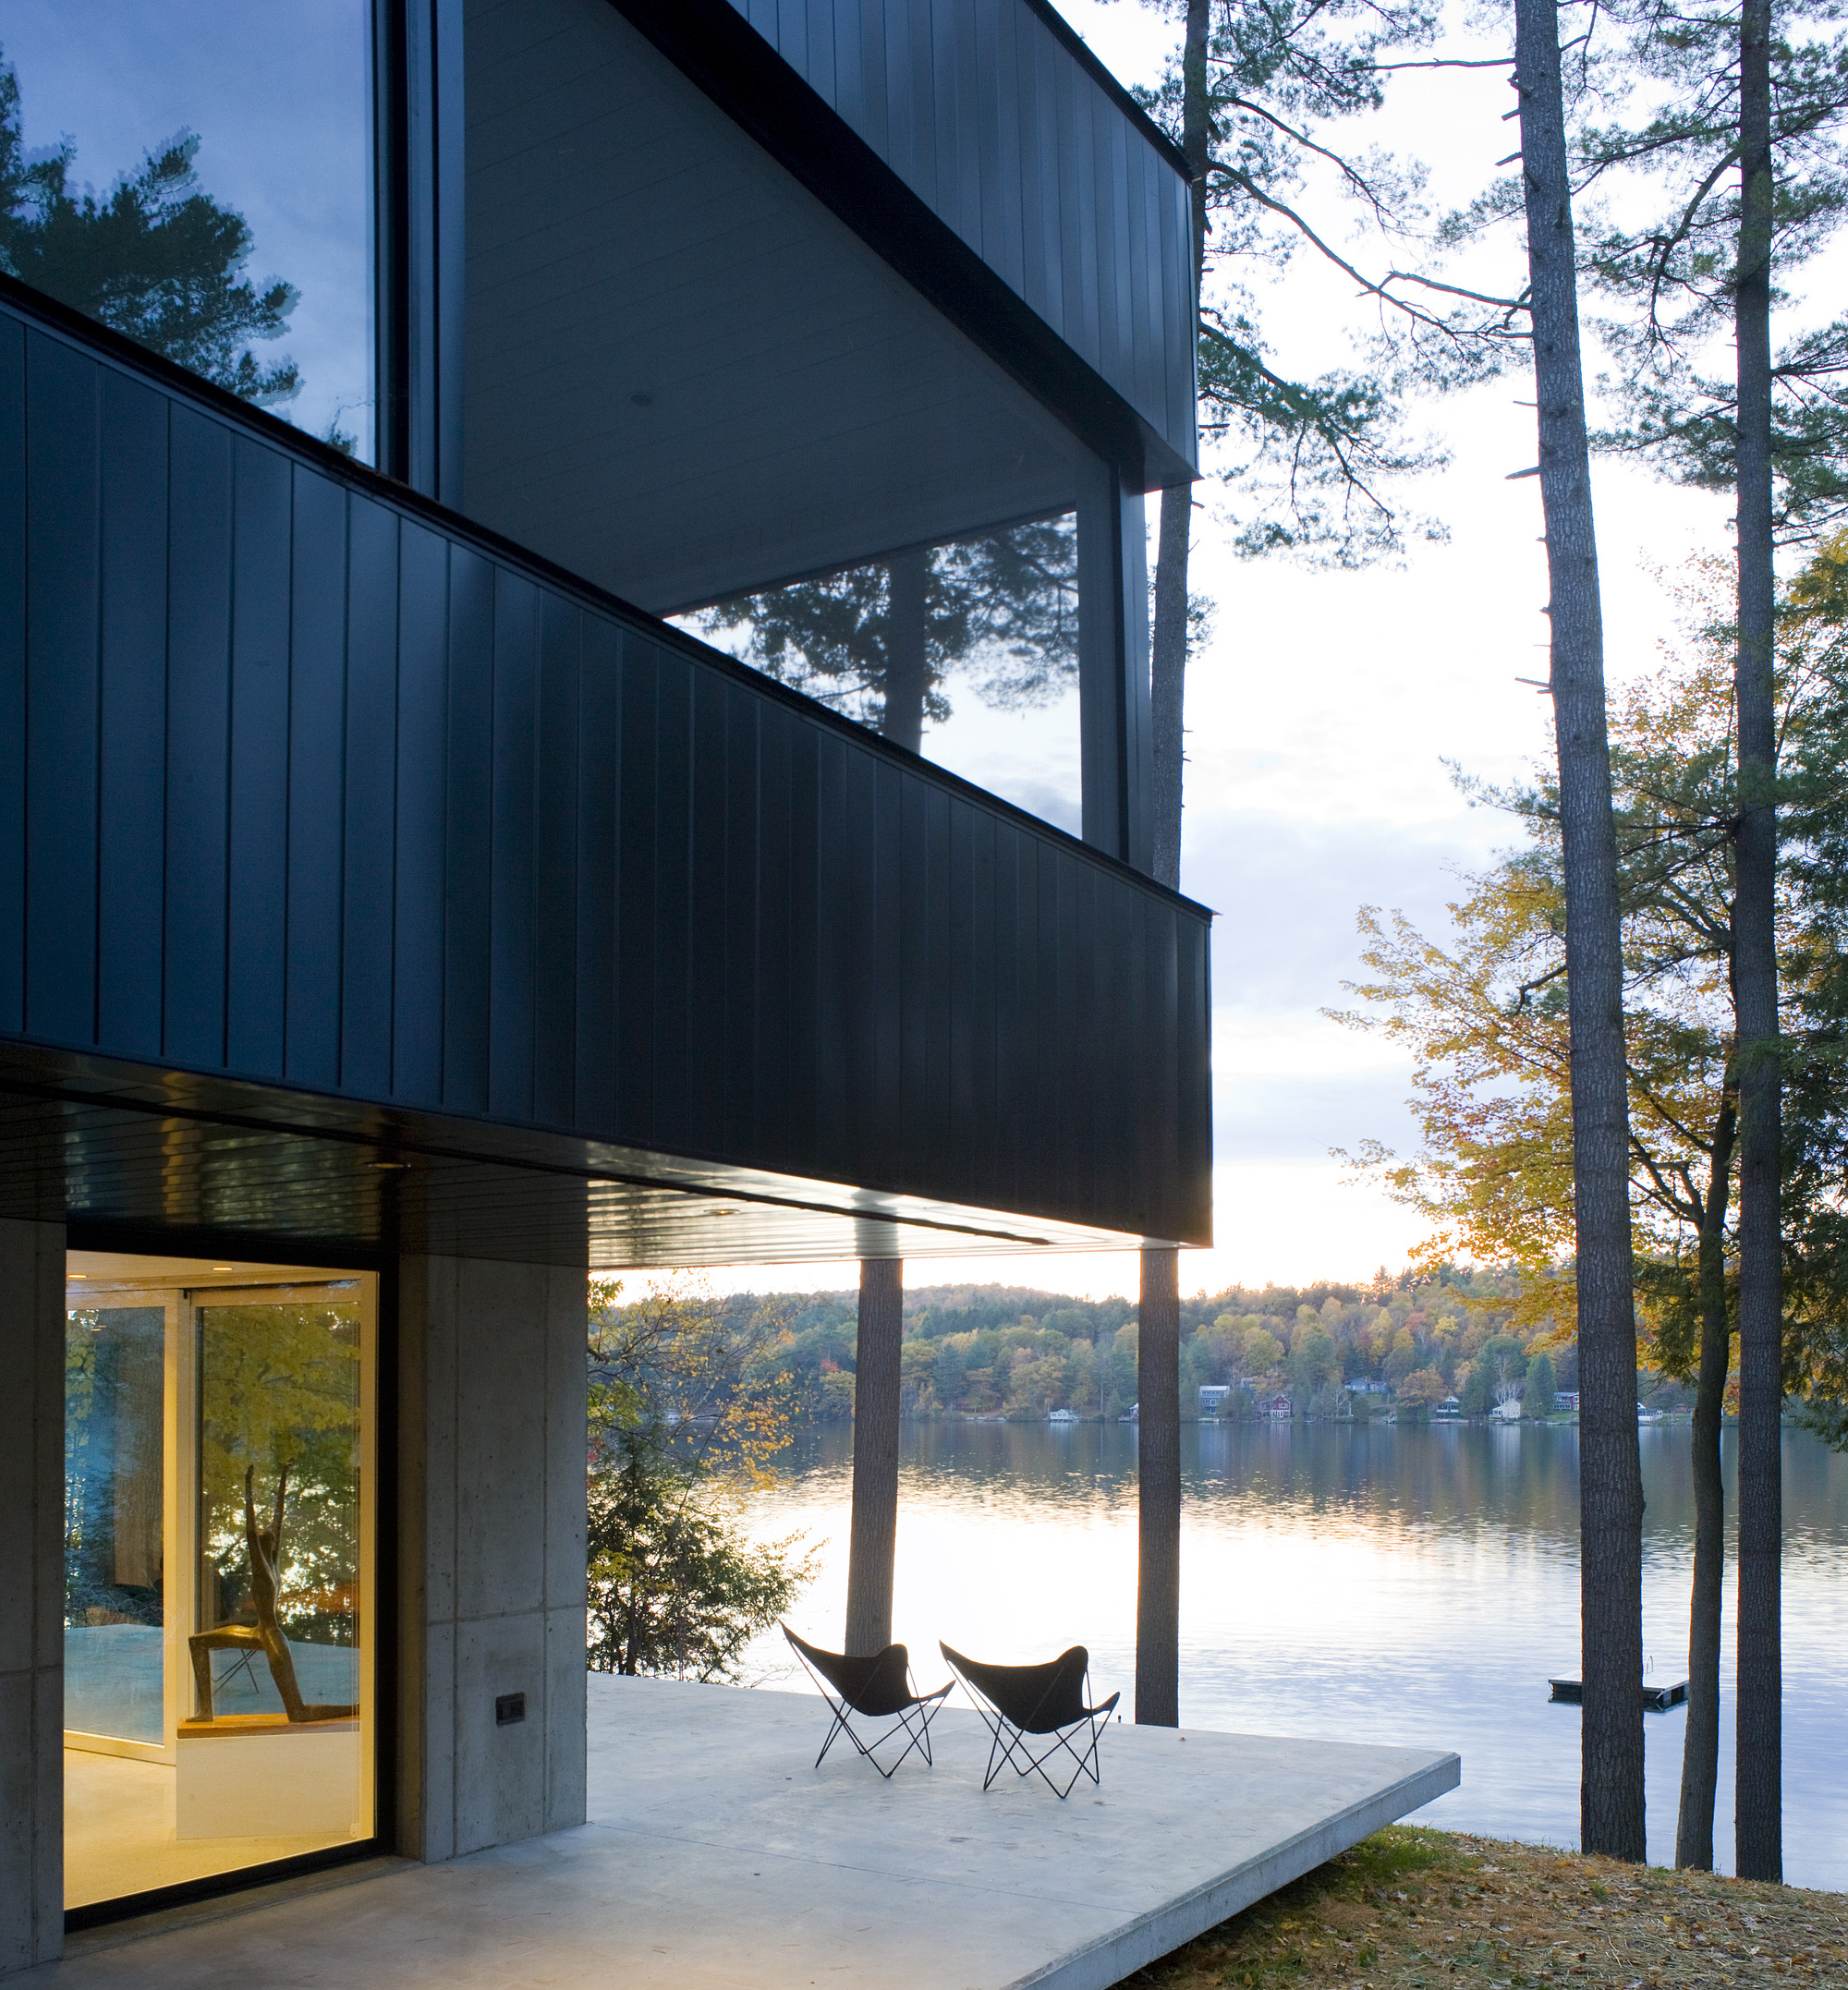 Cantilever Lake House par Birdseye Design